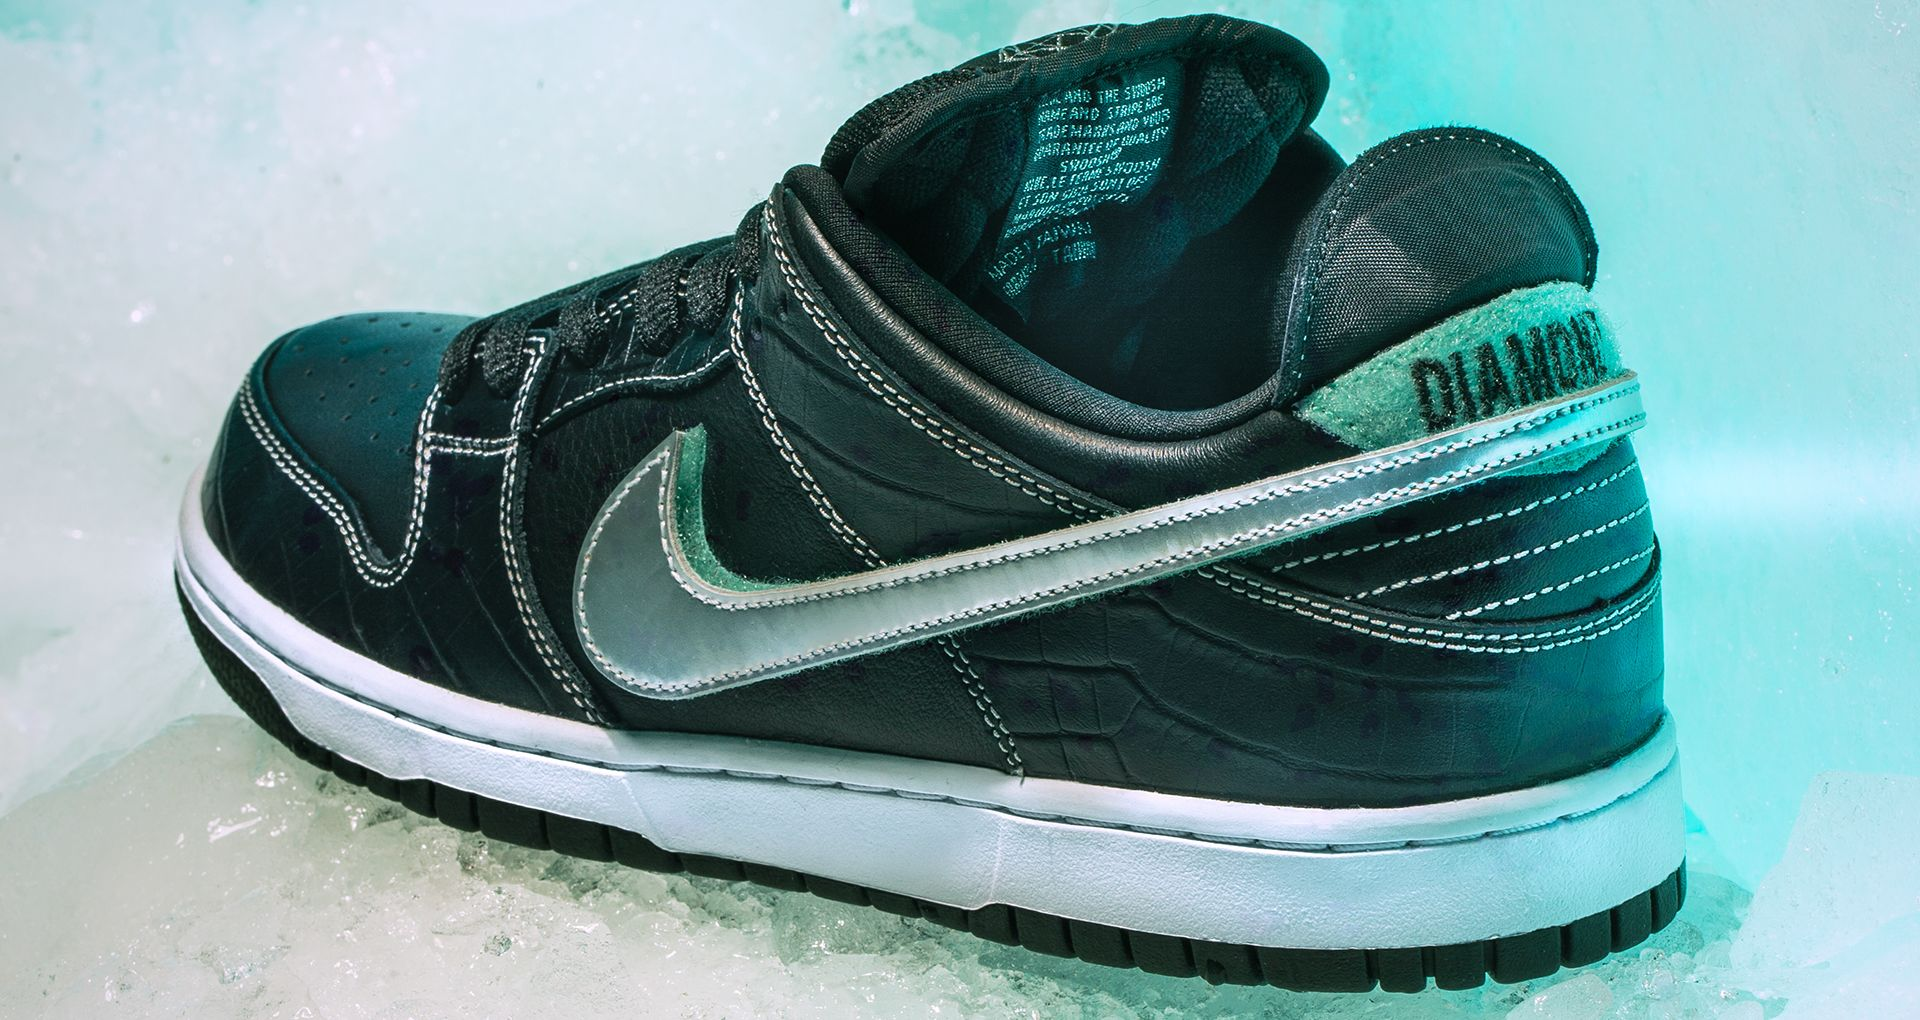 premium selection b9824 1f539 Behind The Design  SB Dunk Low  Diamond